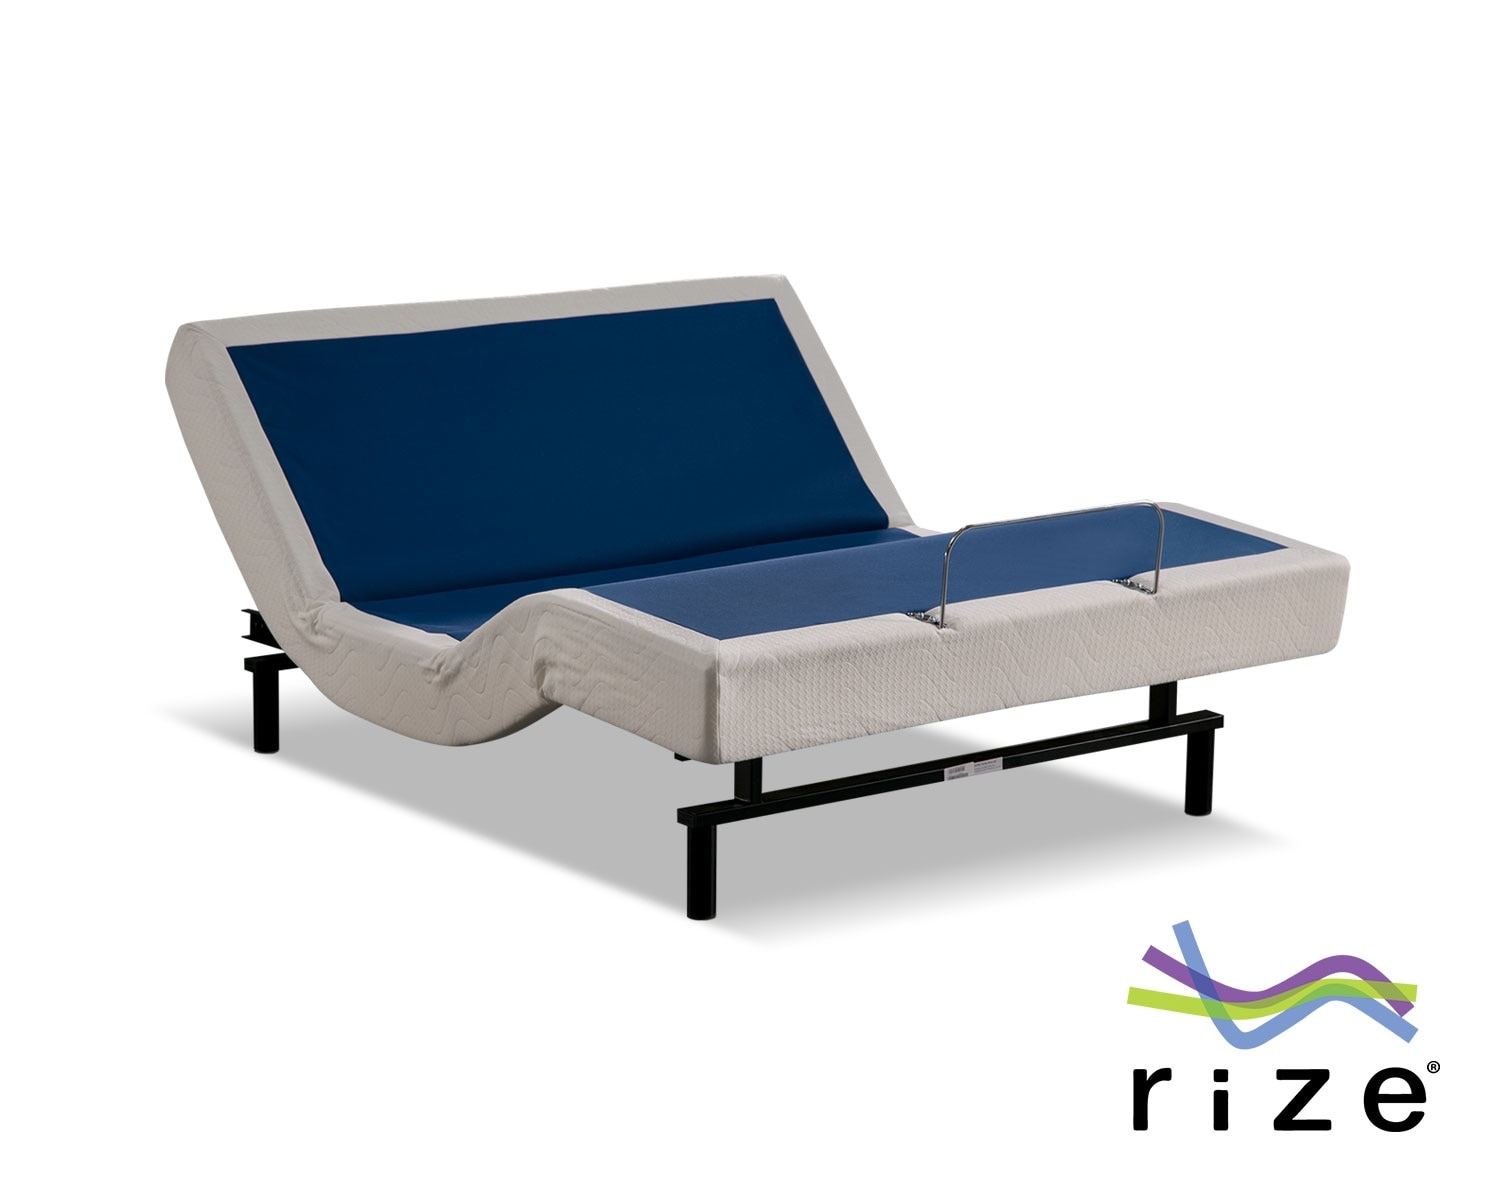 The Rize Elevation Adjustable Collection